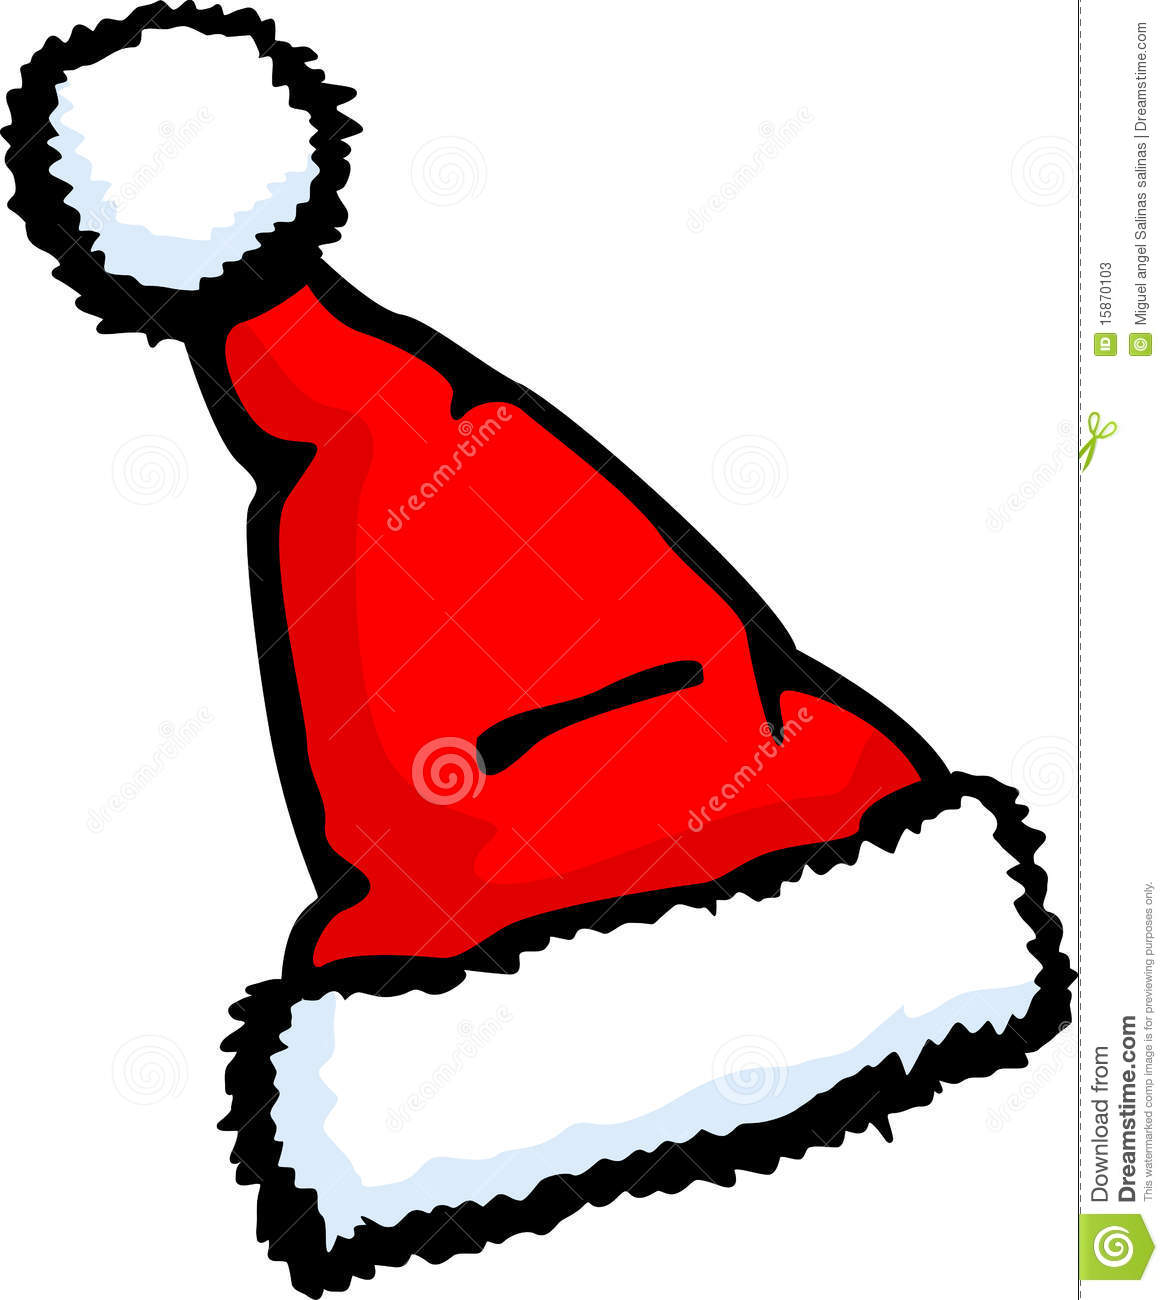 Santa claus christmas hat vector illustration stock